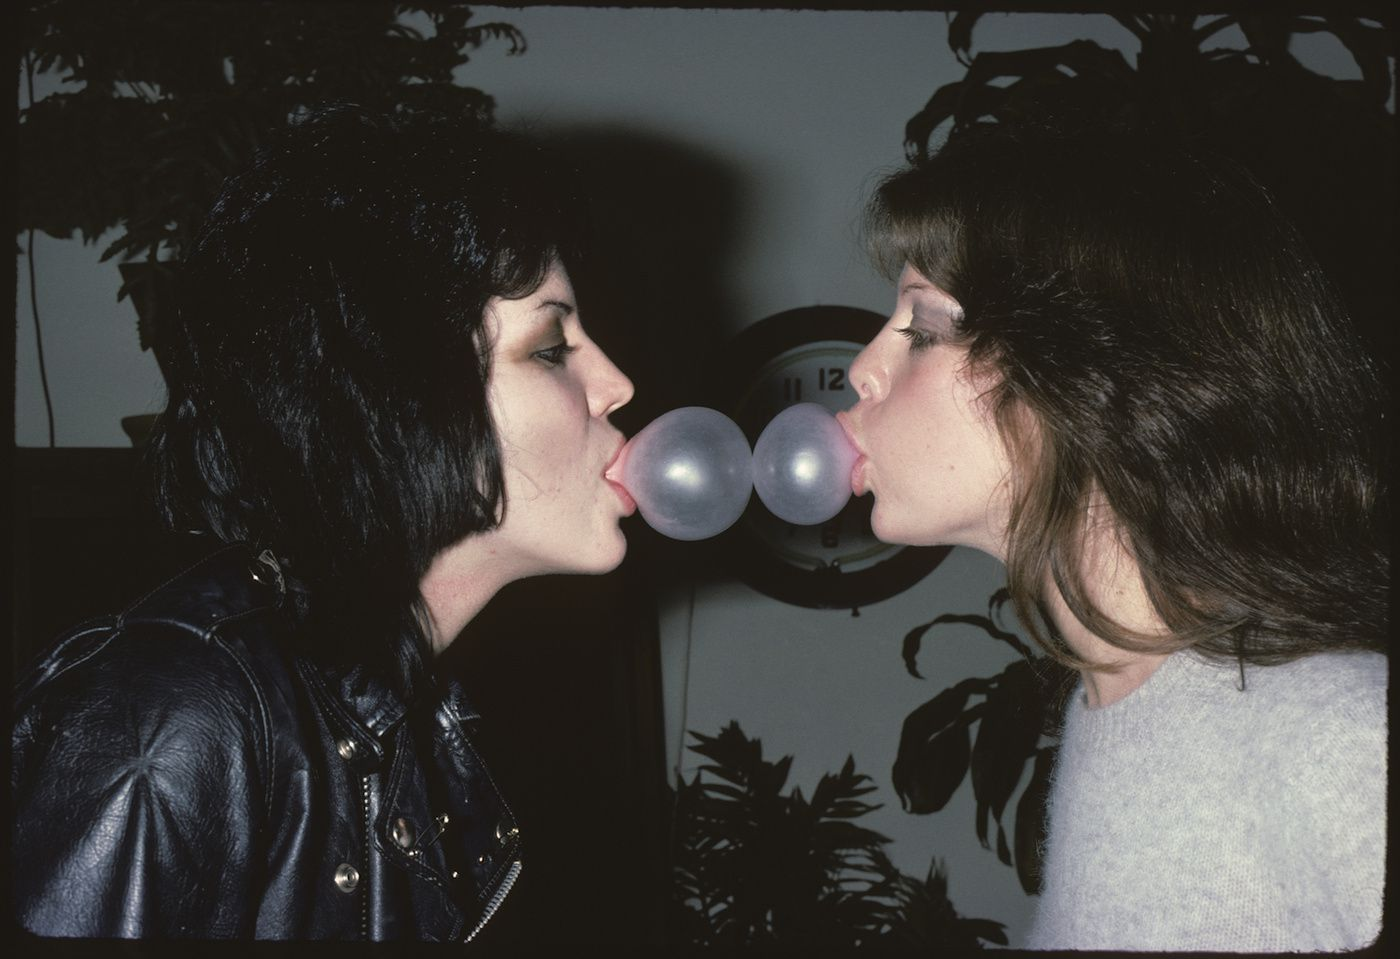 Jackie Fox Blowing Tremendous Bubbles With Joan Jett - credit: Brad Elterman